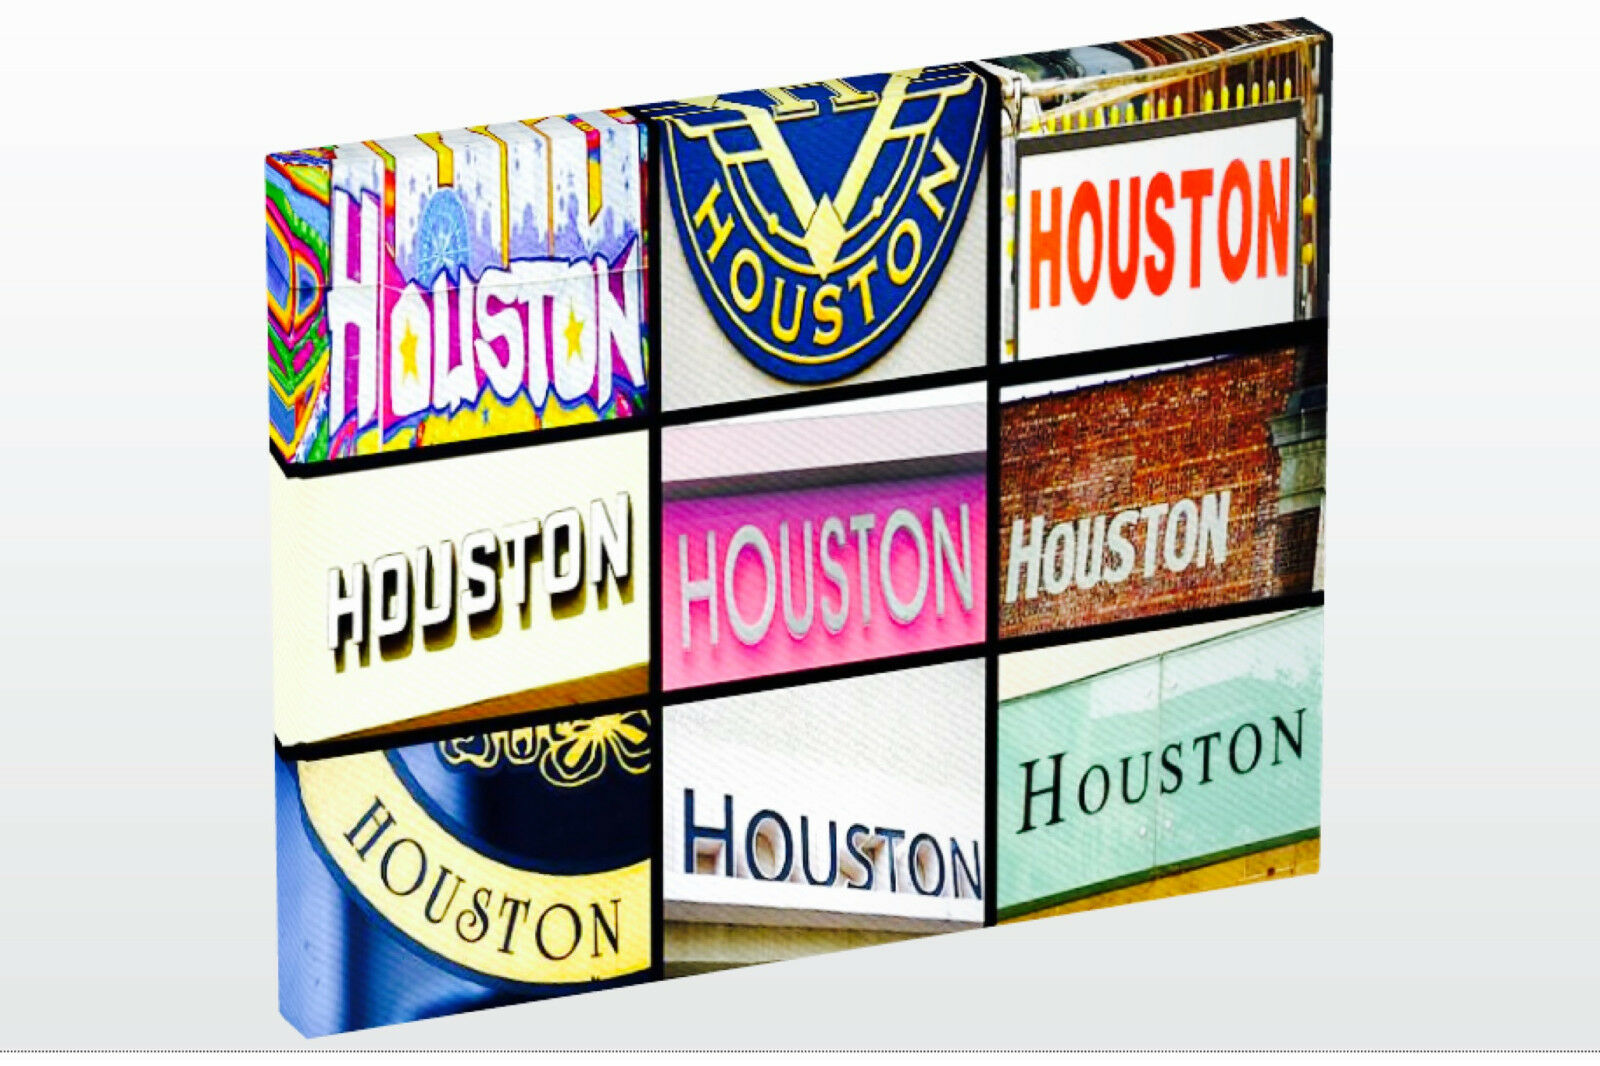 Personalized Photo Canvas featuring the name HOUSTON in photos of signs